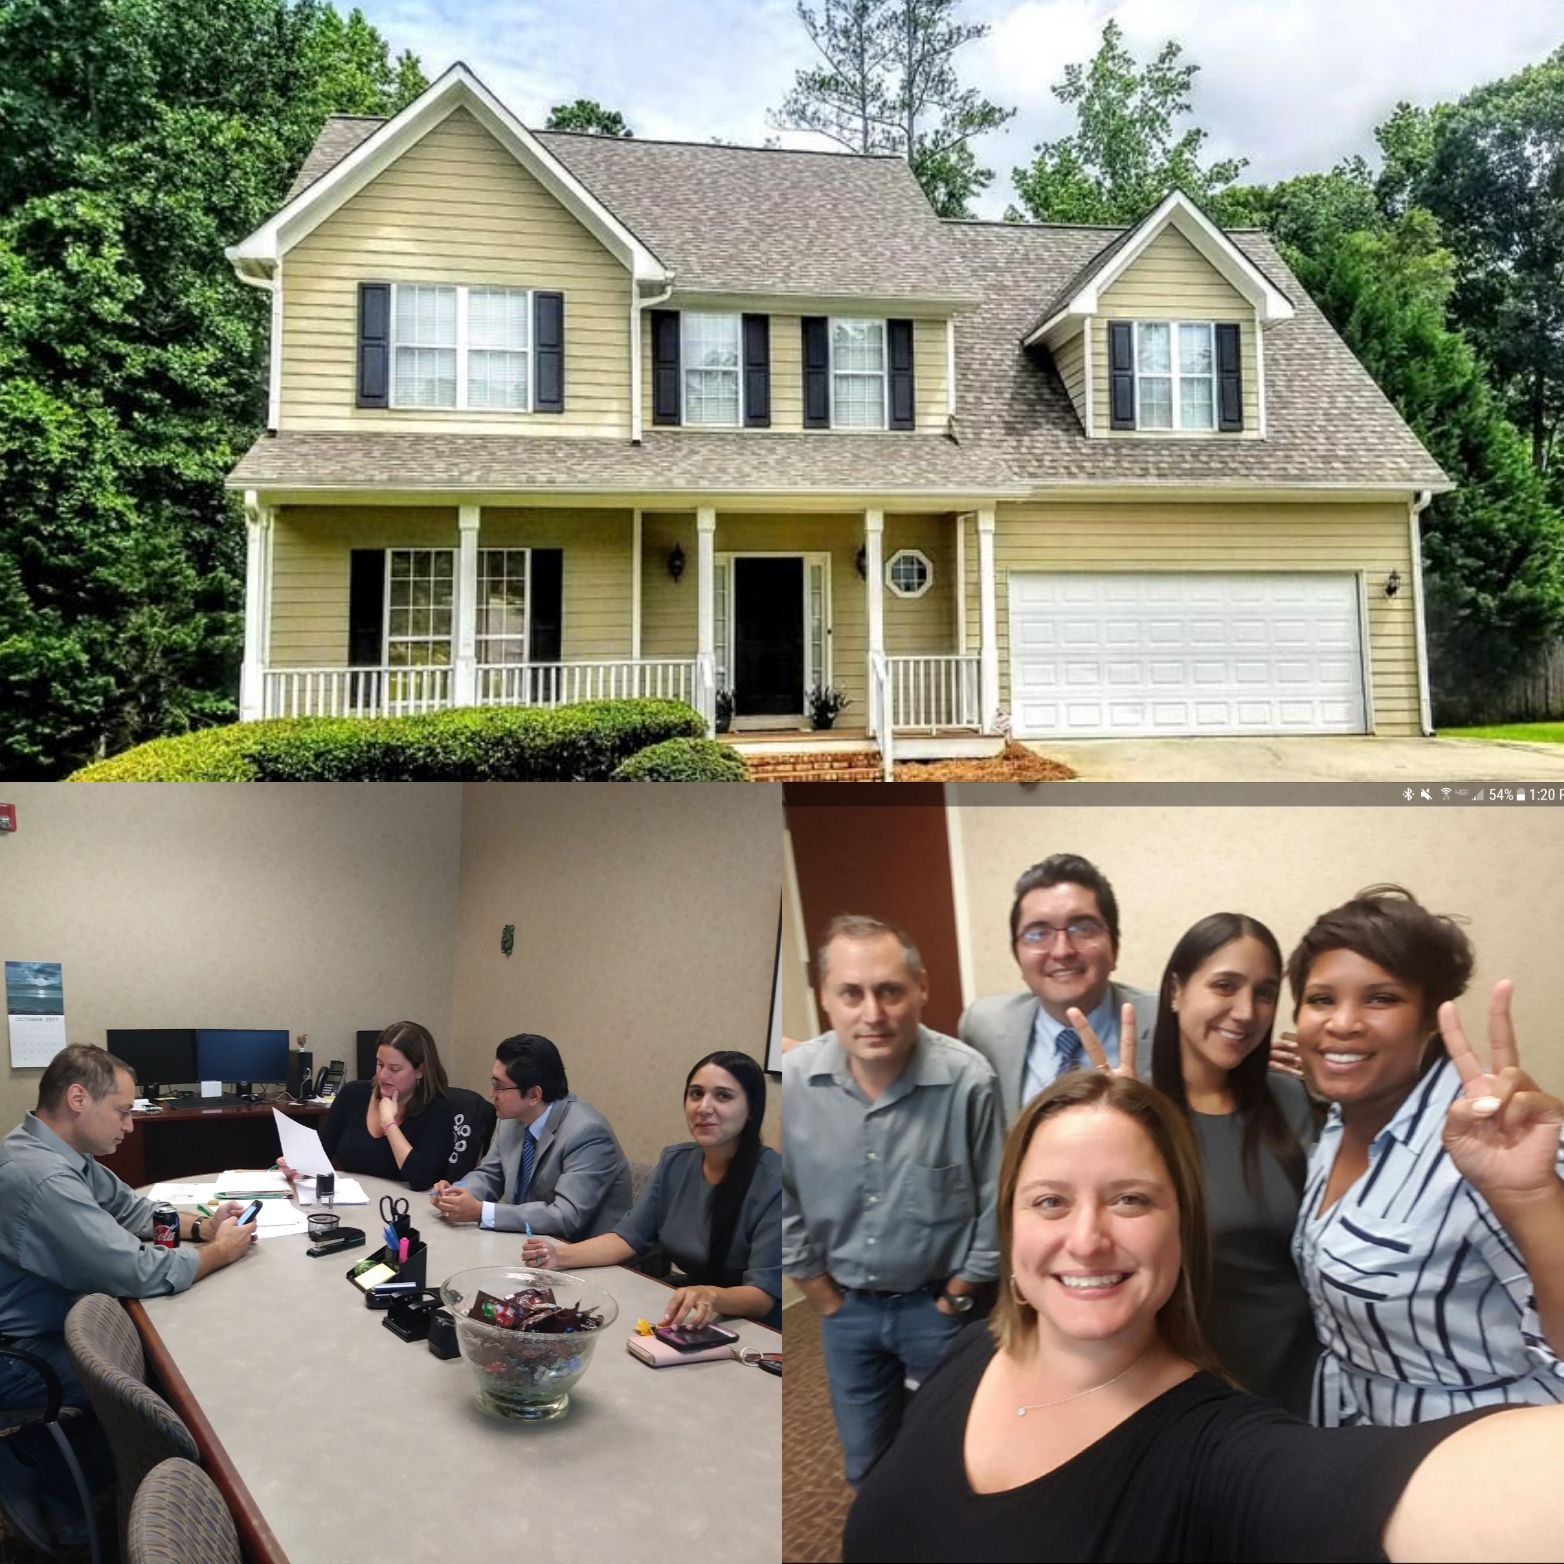 Lawrenceville Home Sold Happy Home Buyers